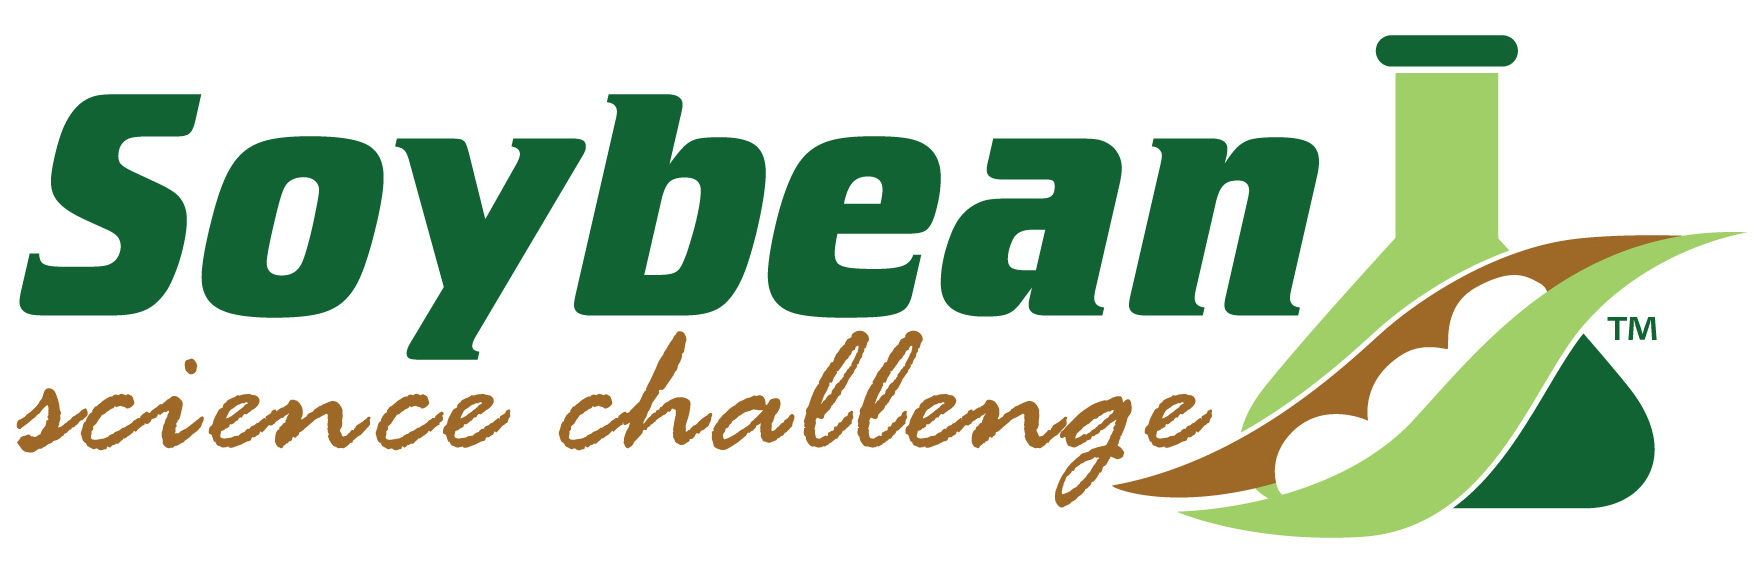 picture of soybean science challenge logo